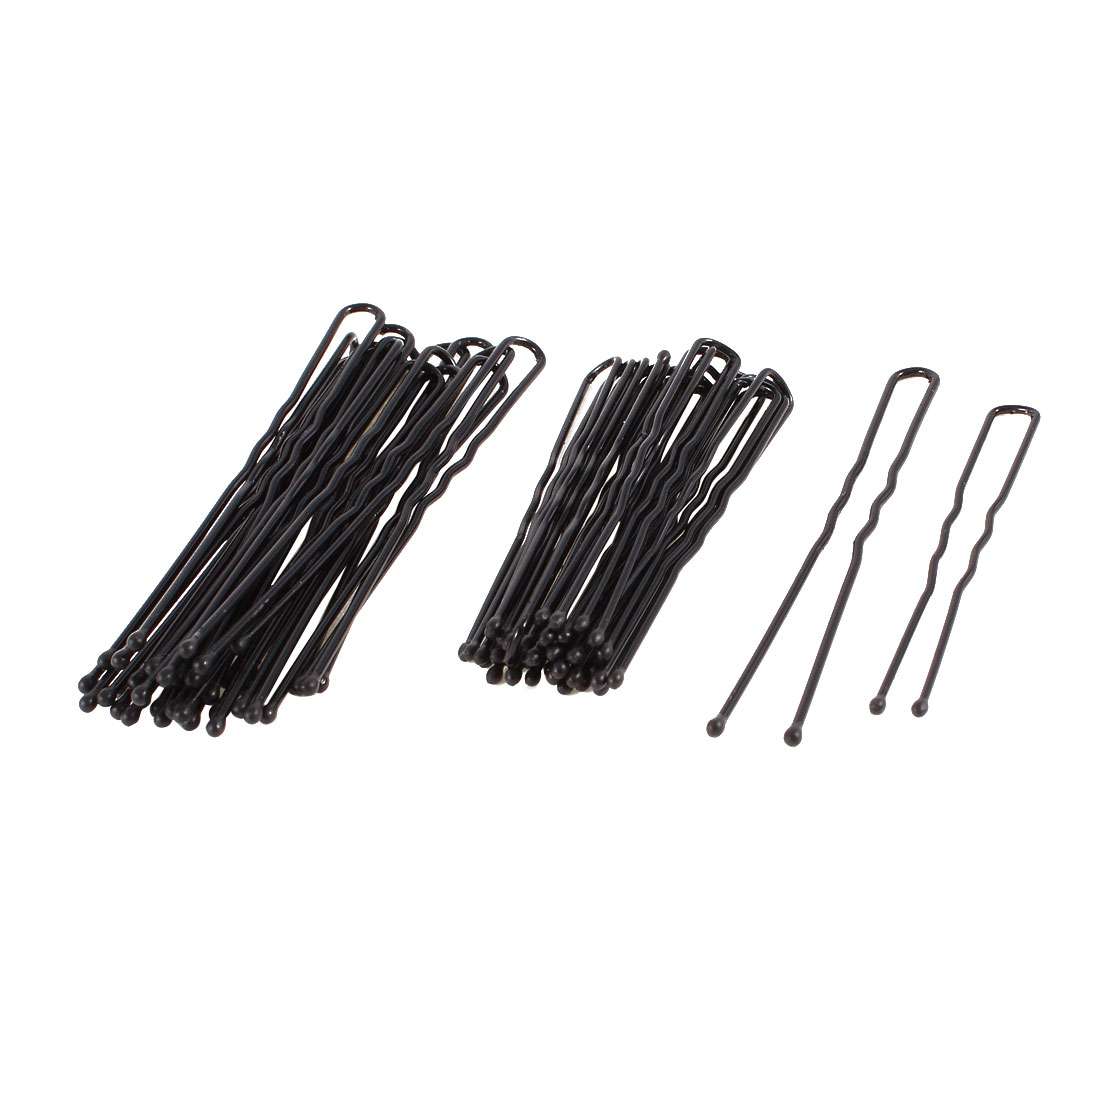 Ladies DIY Hairstyle Black Metal Hair Barrette Bar Clips 40 Pcs